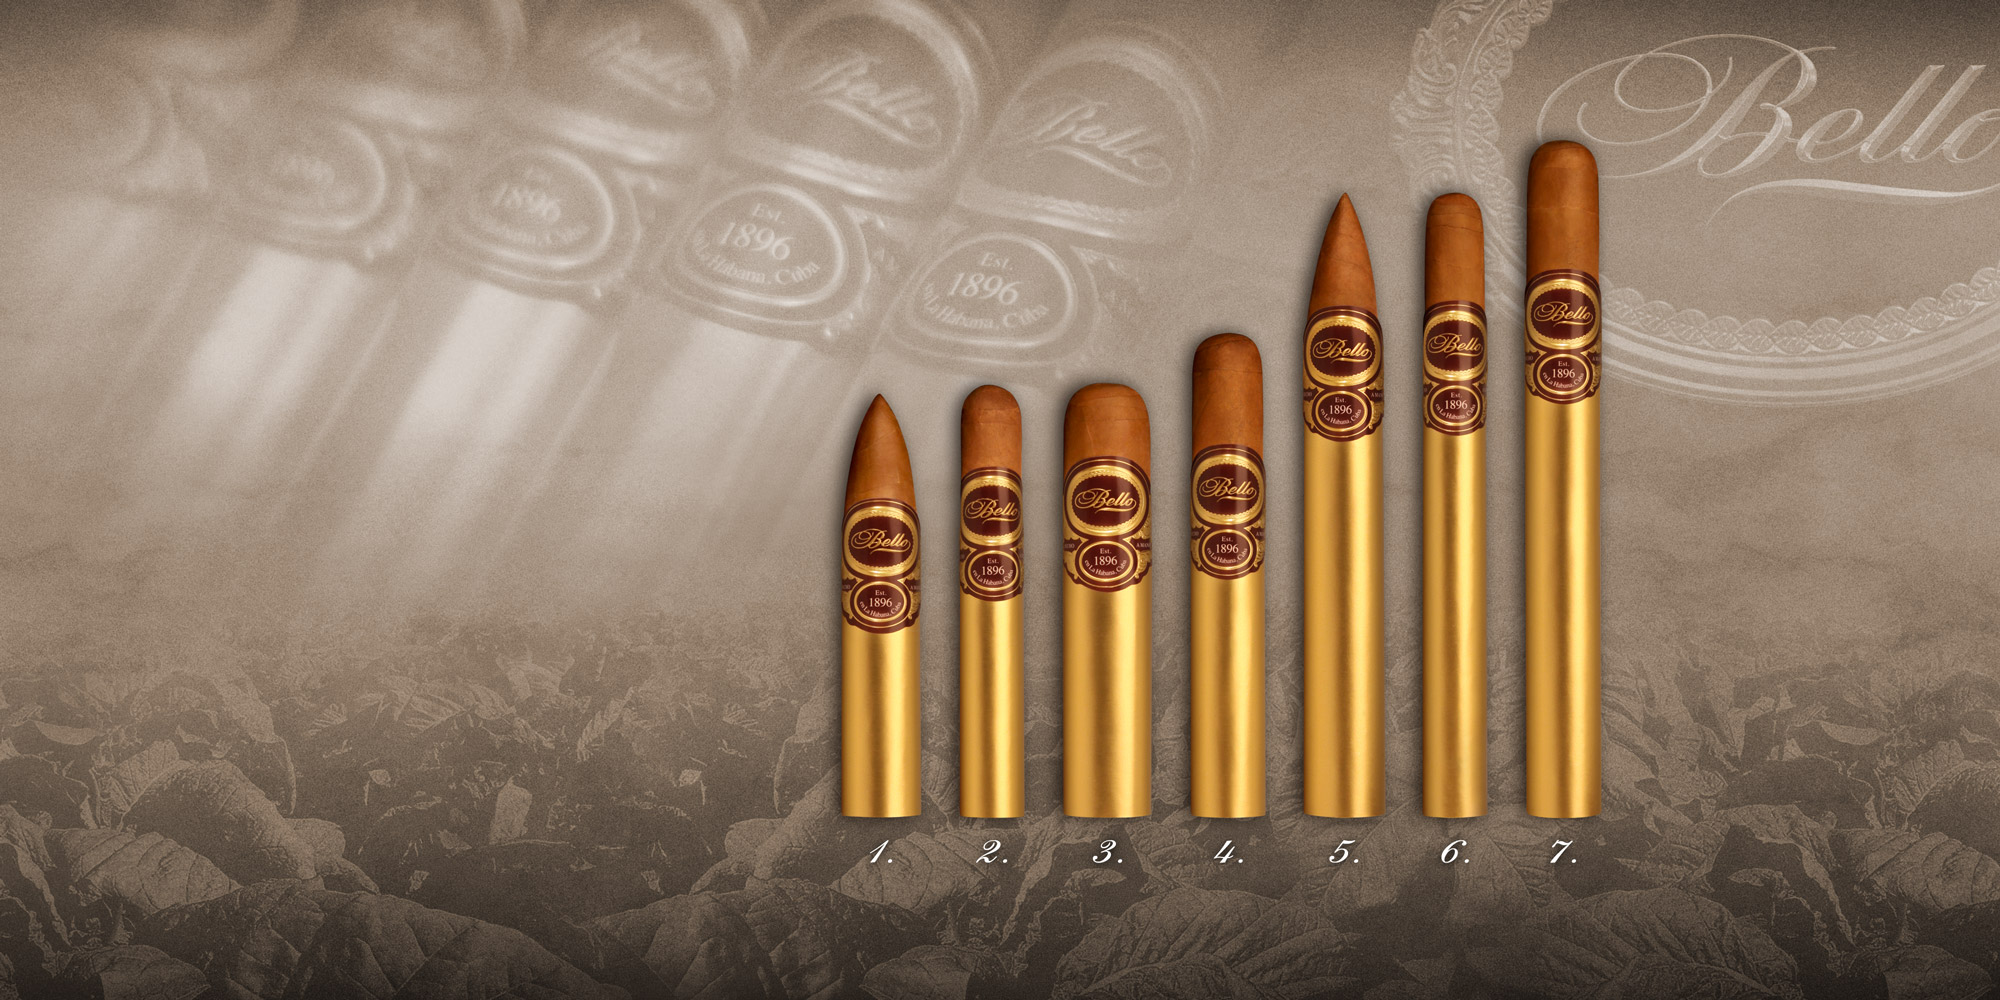 Image result for Bello cigars